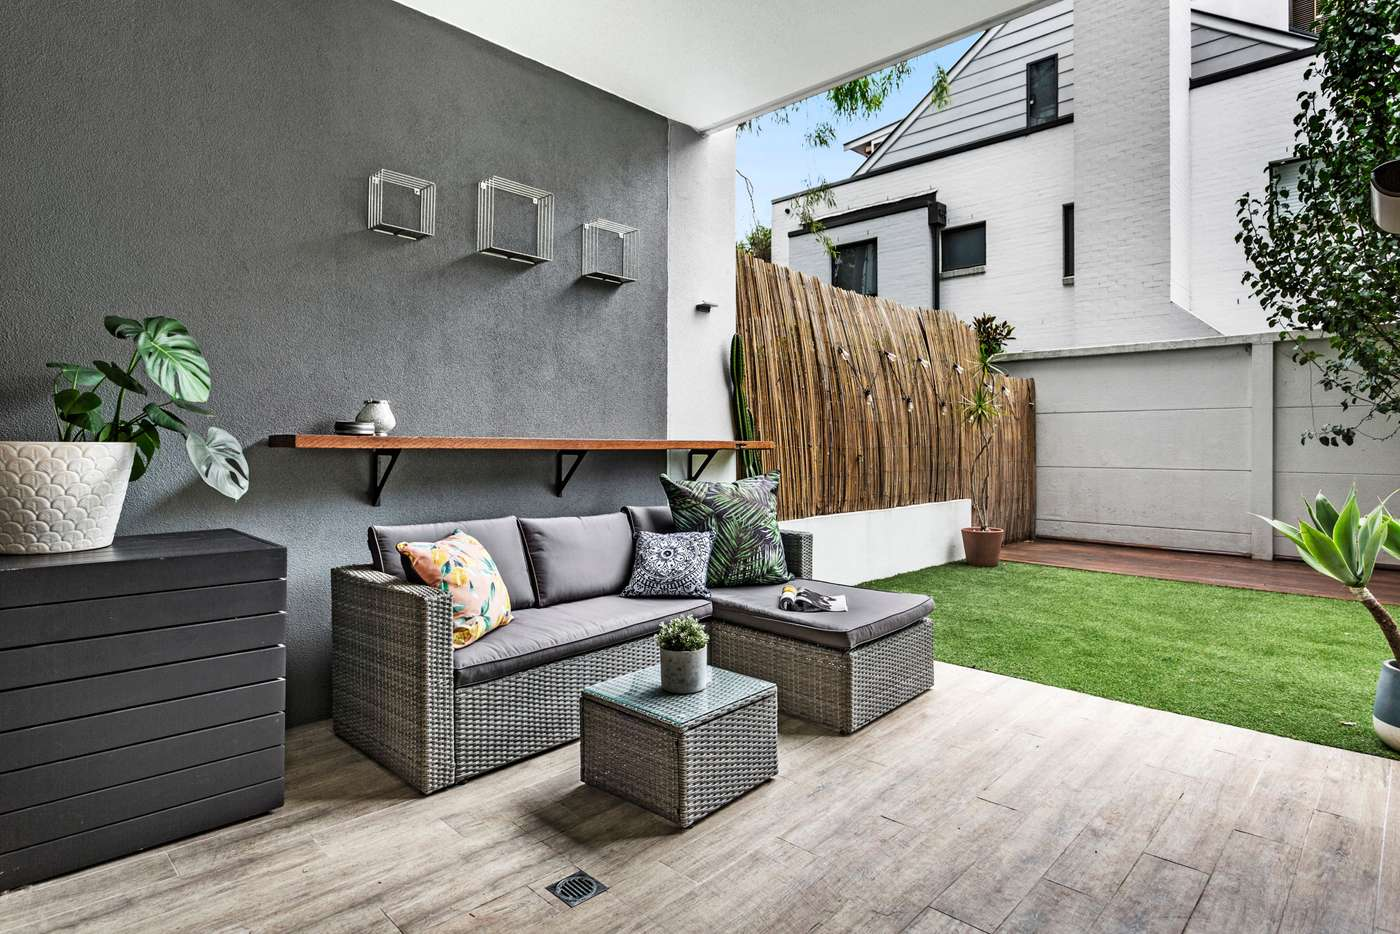 Fifth view of Homely studio listing, 13/90-92 Bay Street, Botany NSW 2019